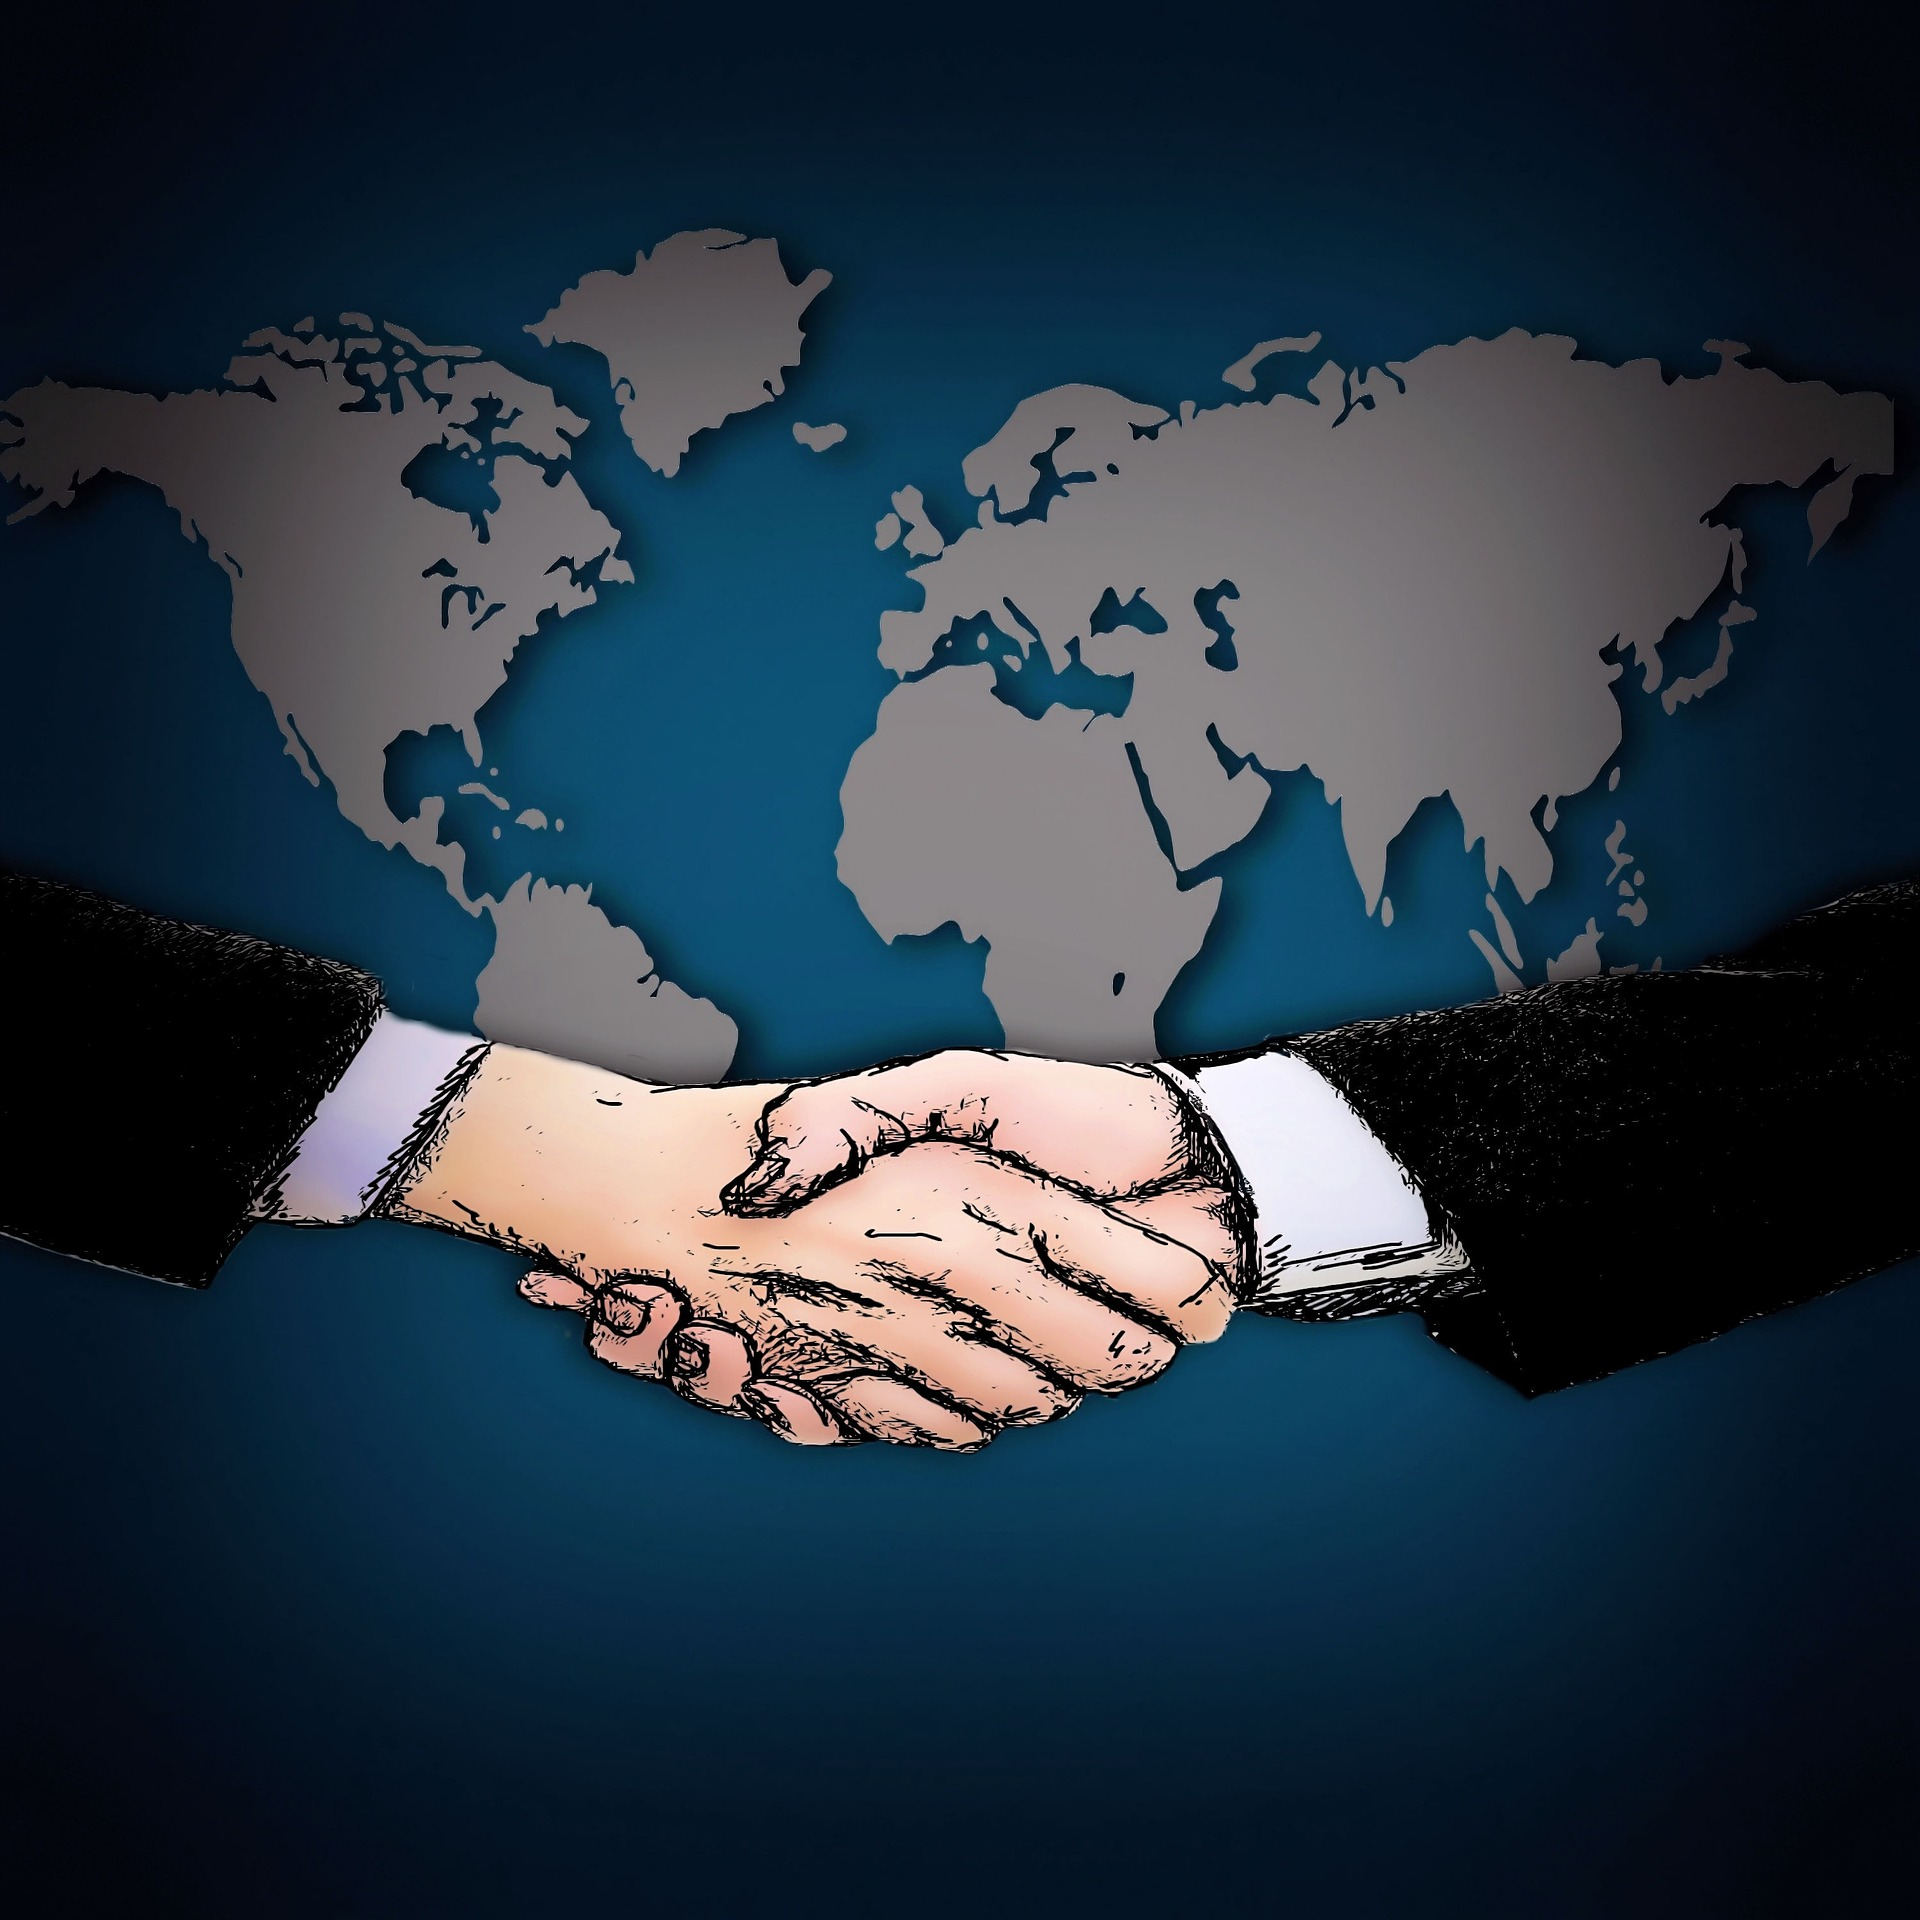 Shaking hands across the globe